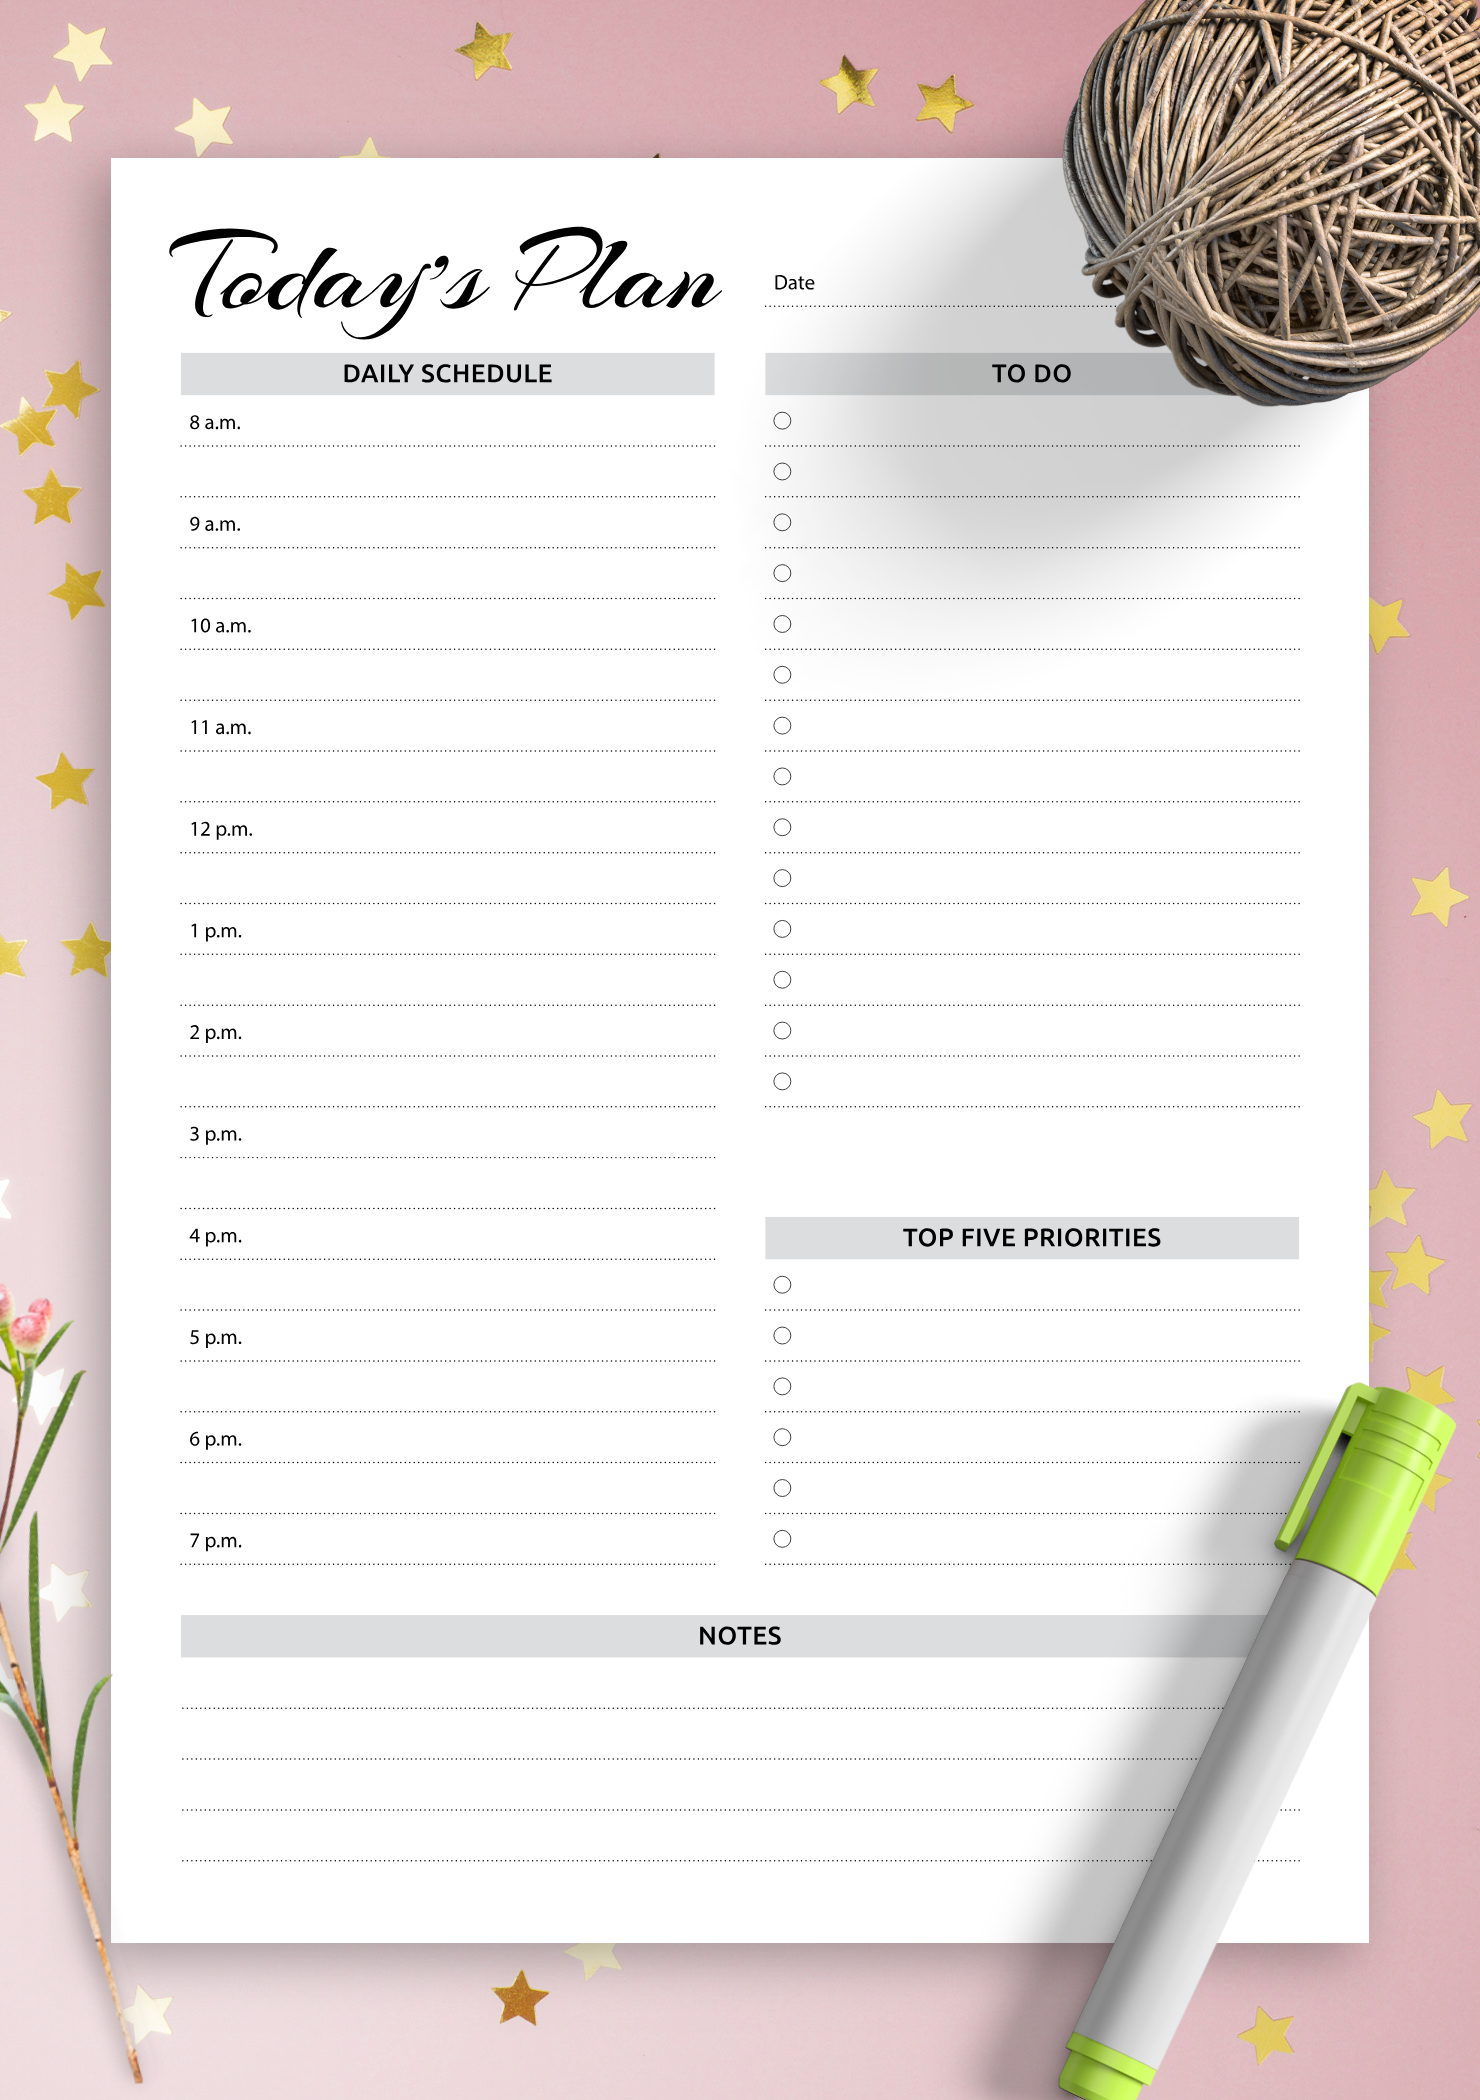 Download Printable Daily Planner With Hourly Schedule & To Daily Hourly Schedule Print Out